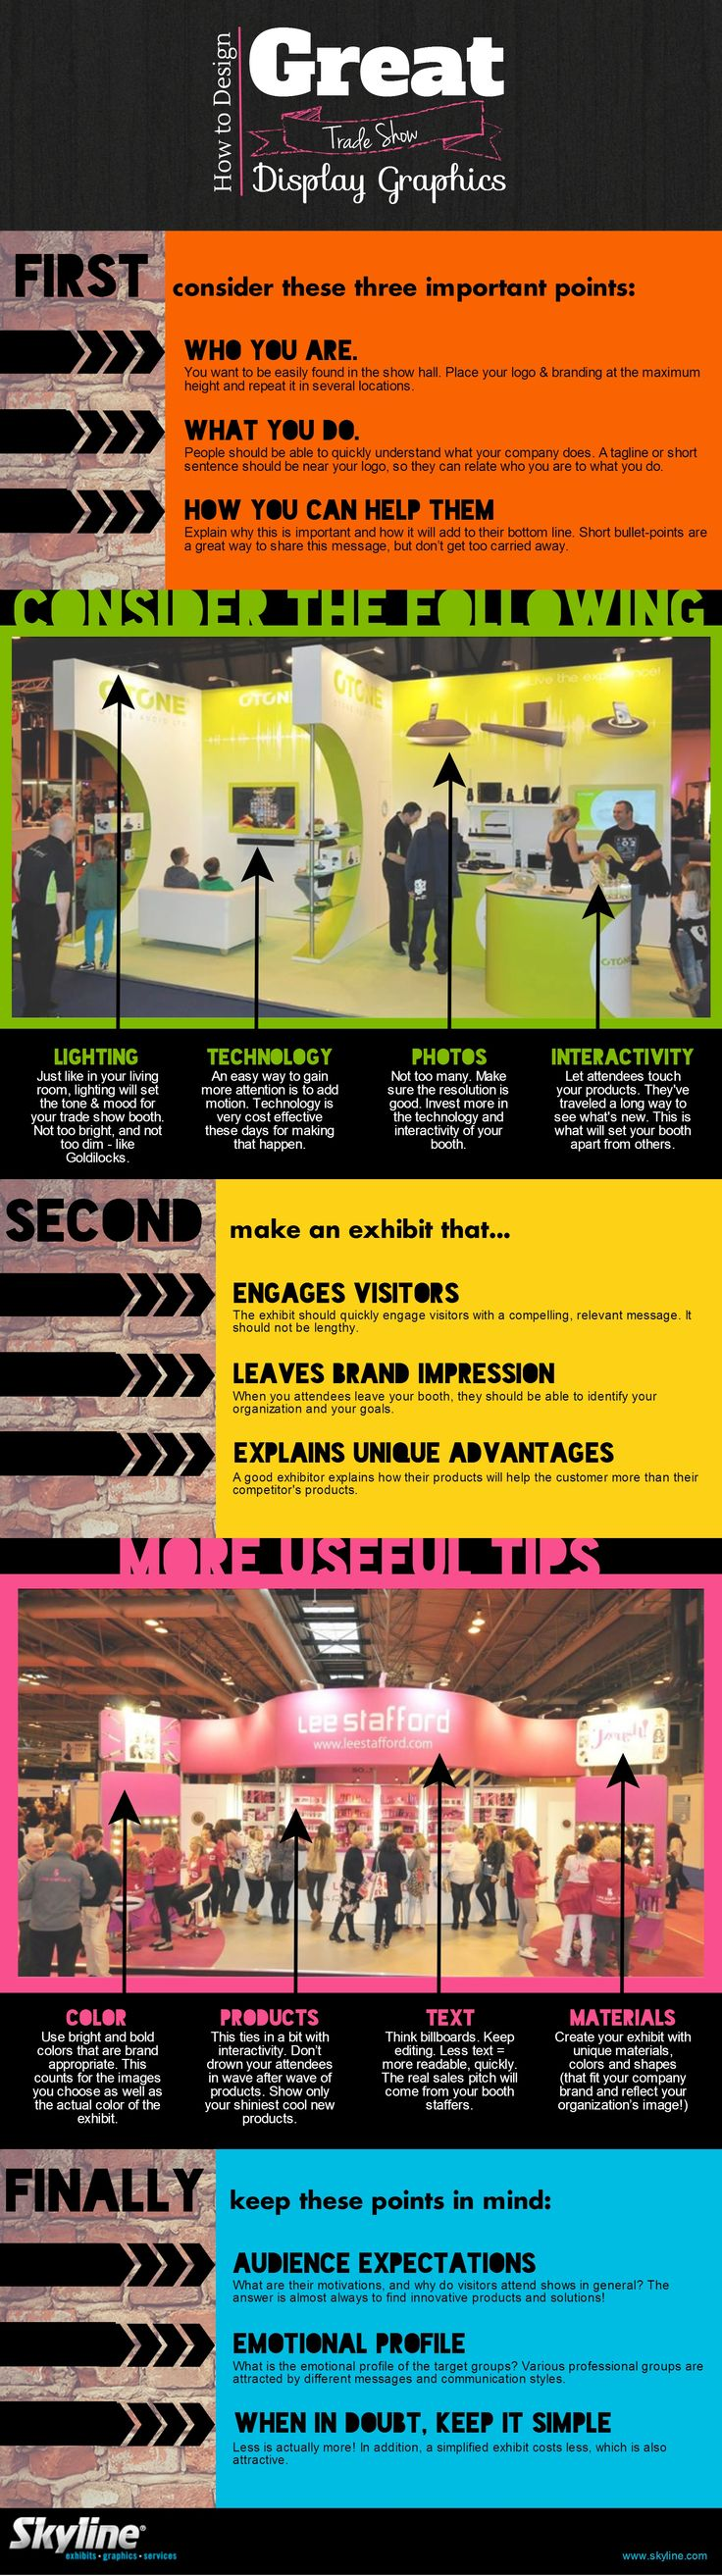 How to Design Great Trade Show Graphics #skylineexhibits #infographic link to original blog article used to create this infographic http://mflav.in/1r9PjLI